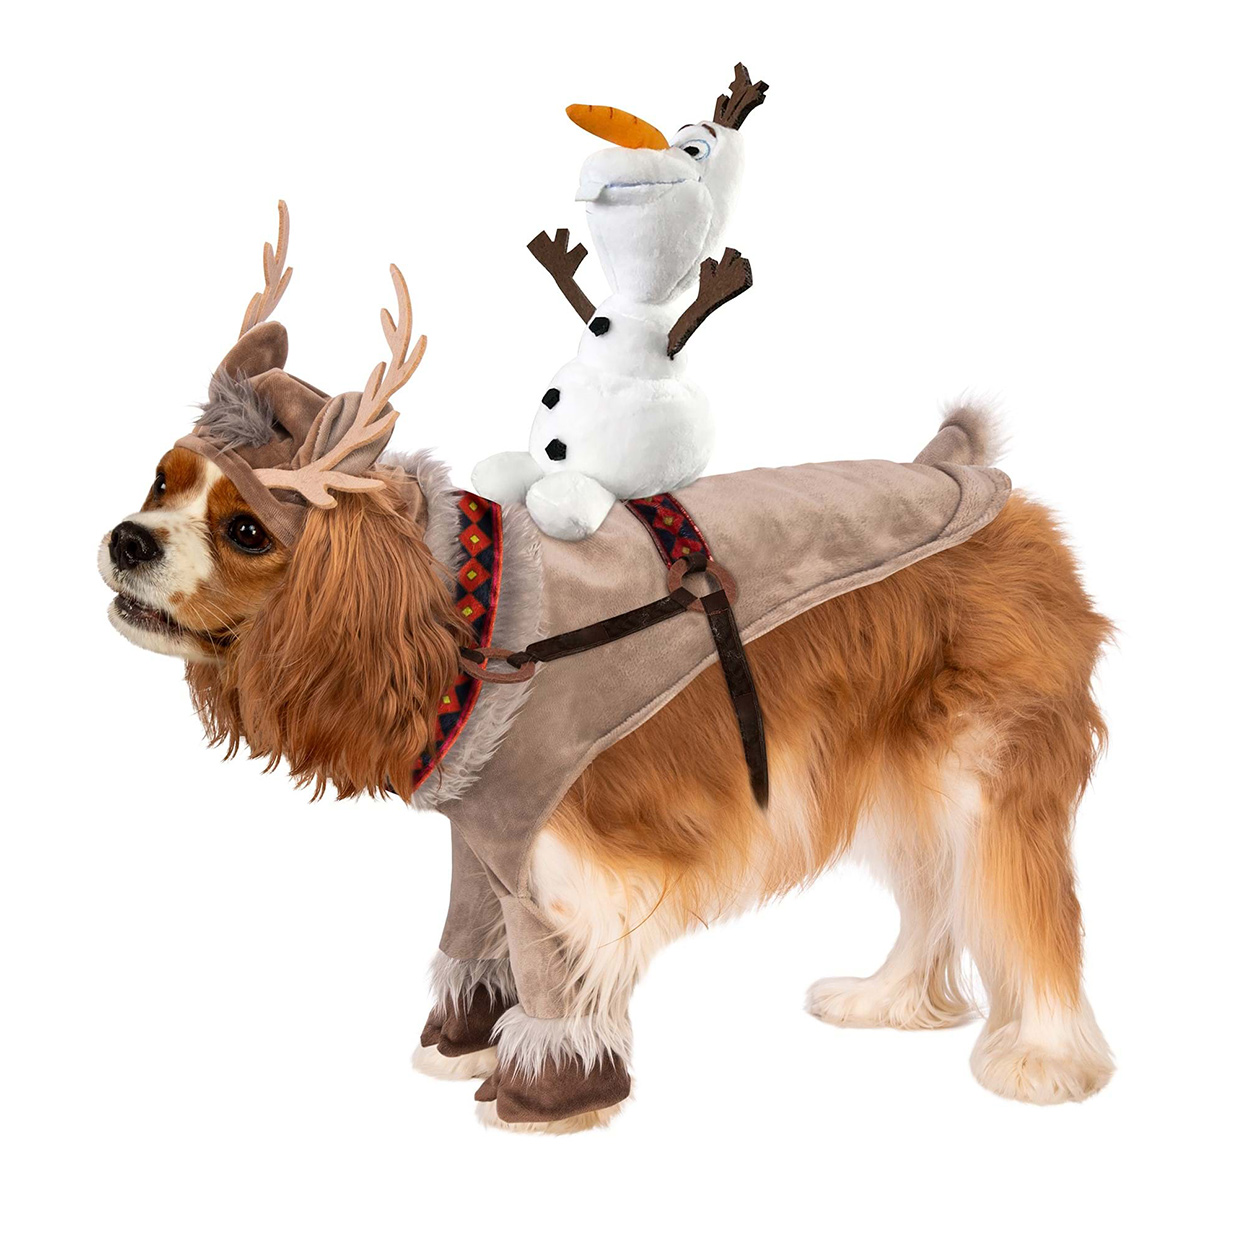 Dog wearing a Frozen Sven and Olaf Pet Costume on a white background